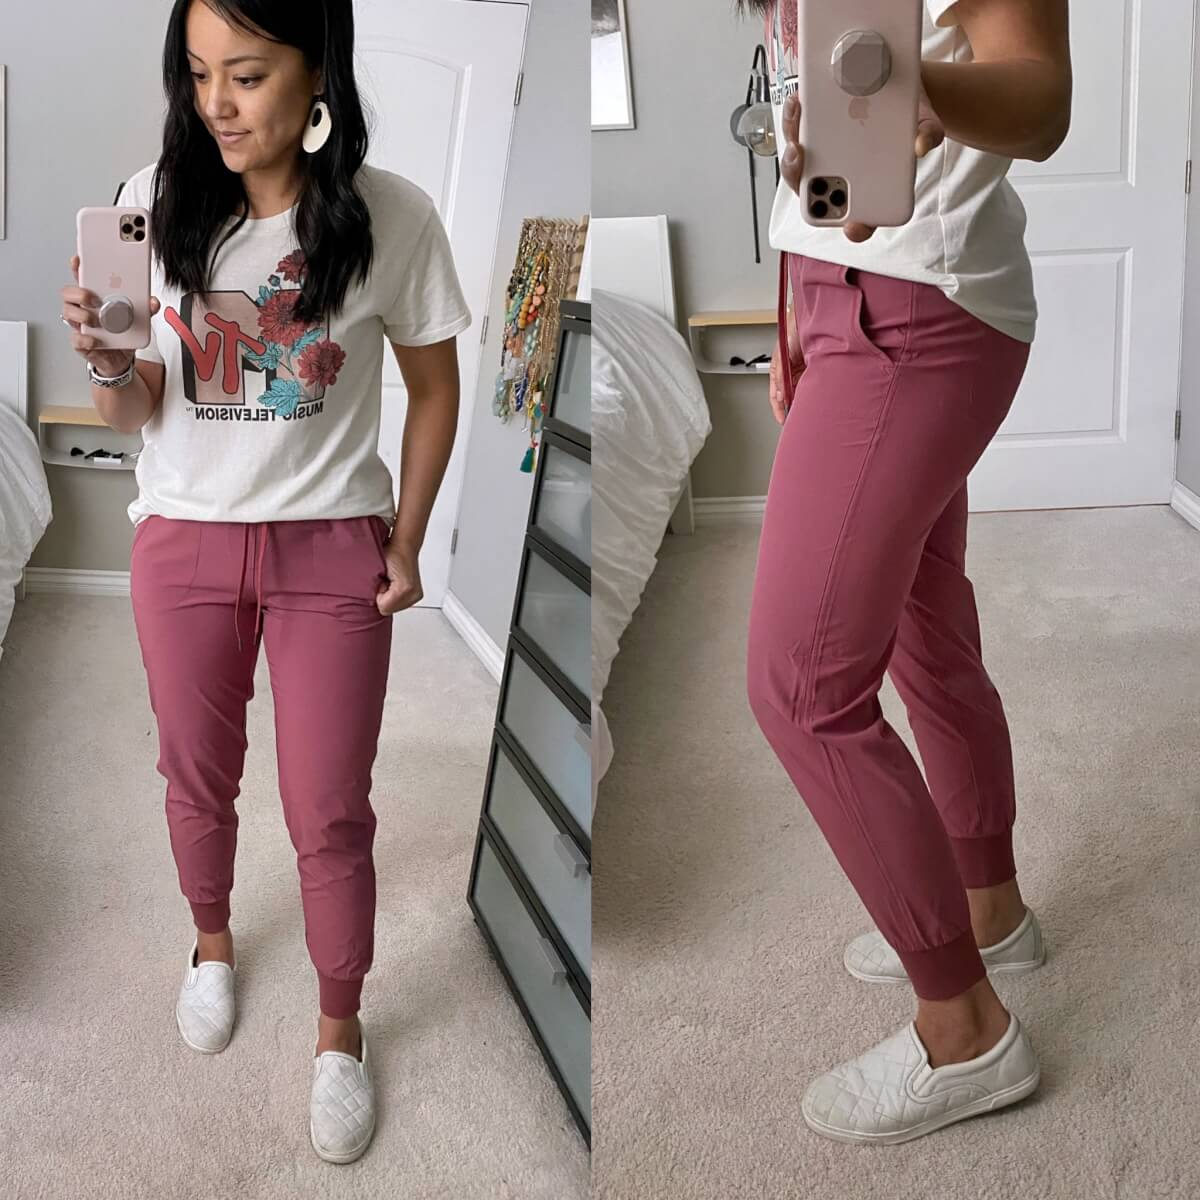 Casual Outfit: MTV tee + pink Amazon joggers + white slip-on sneakers + white earrings